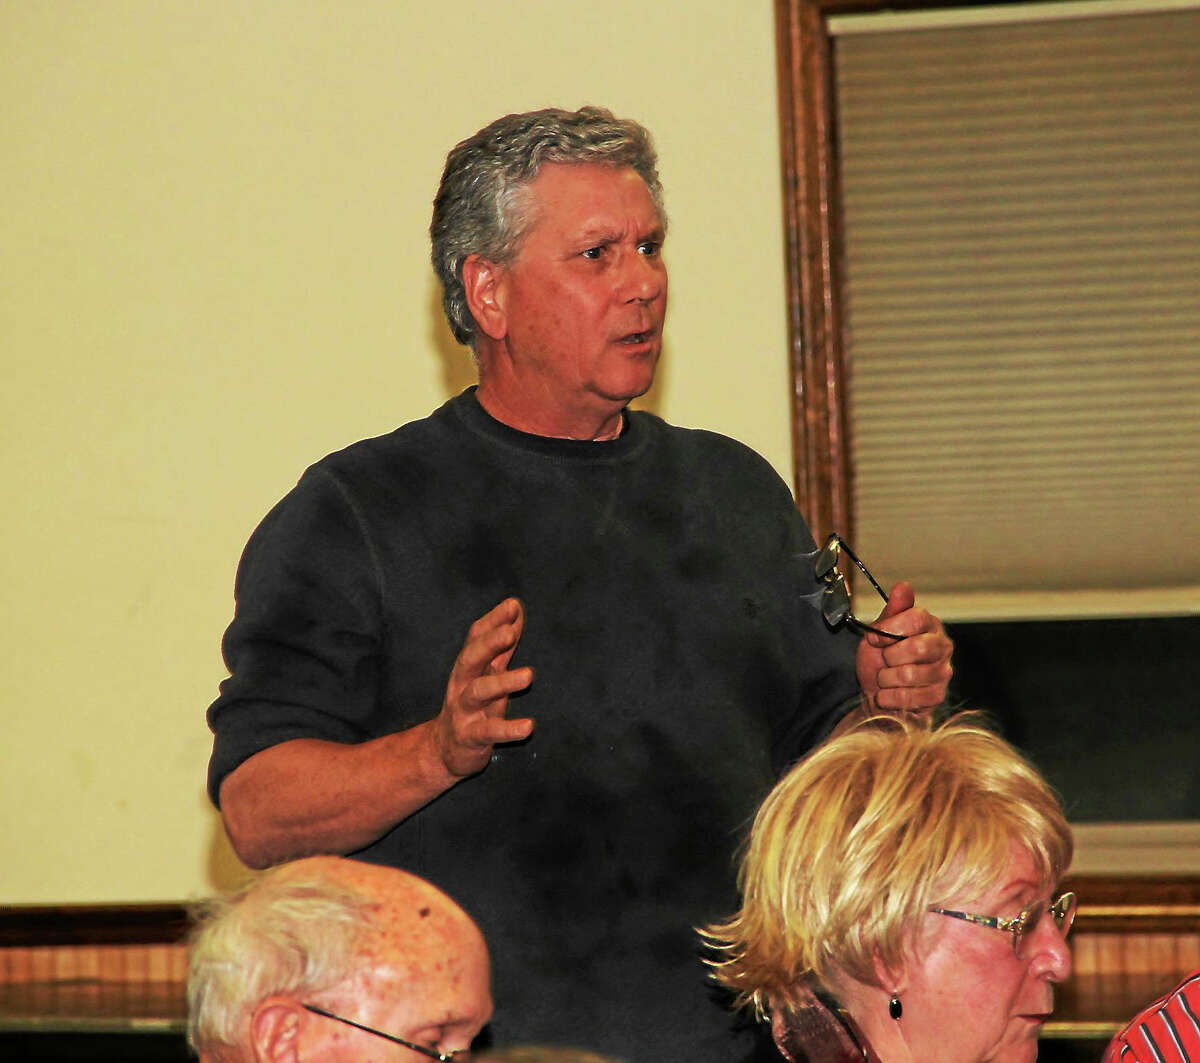 """Gary Nalband, of Litchfield, owner of Mirror Polishing Plating in Waterbury, addresses the panel during the """"The Shirt Off My Back"""" discussion on taxes and the high cost of doing business in Connecticut. The event was held Wednesday night at the Knights of Columbus Hall in Torrington."""